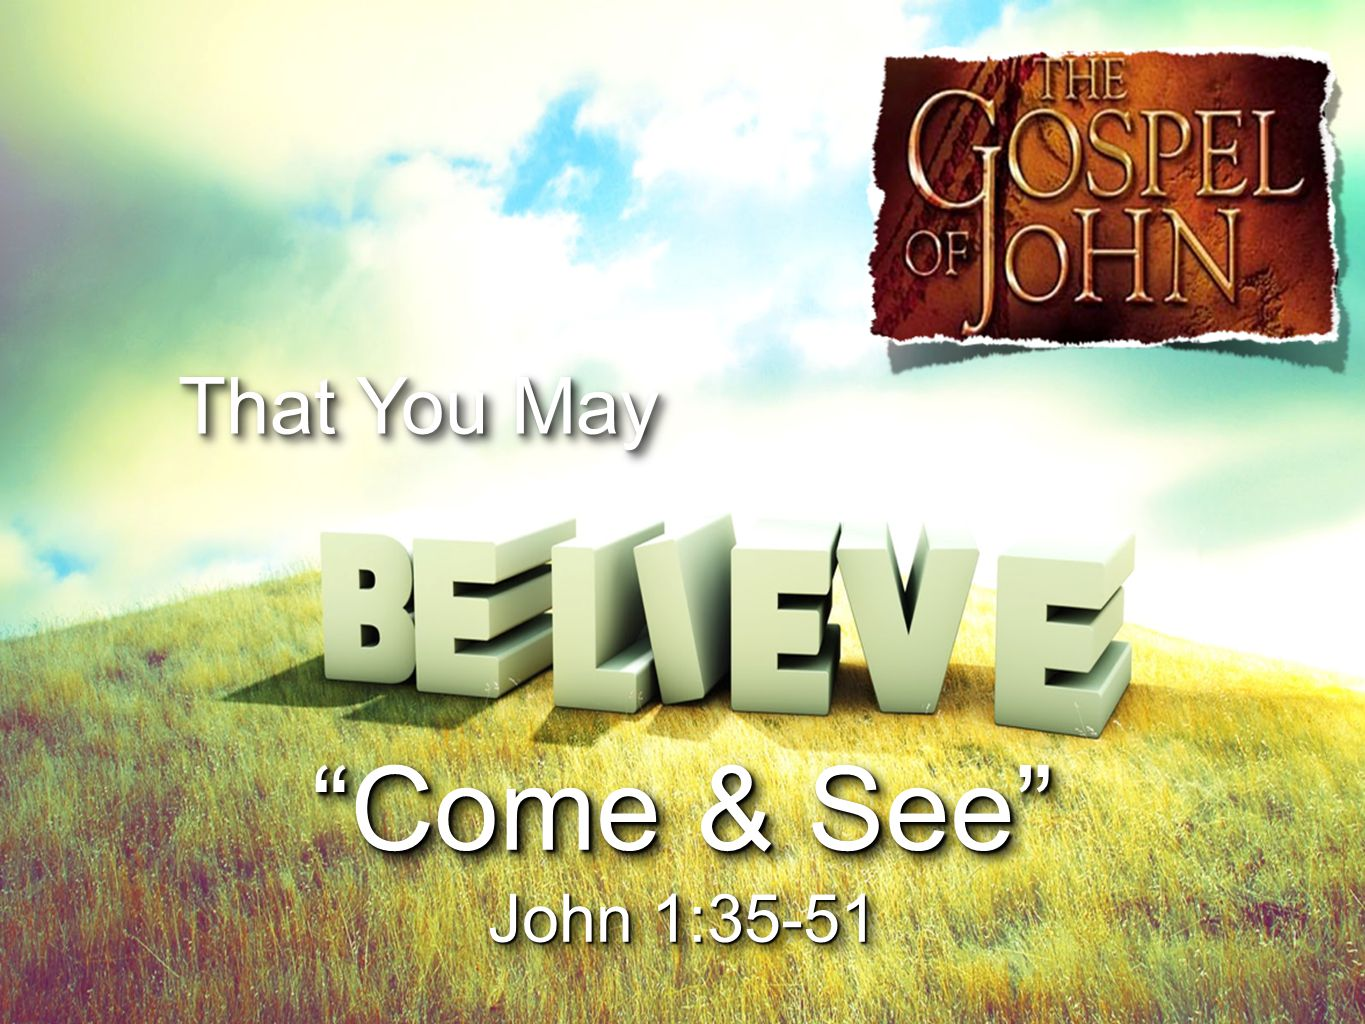 """That You May """"Come & See"""" John 1:35-51 """"Come & See"""" John 1:35-51"""